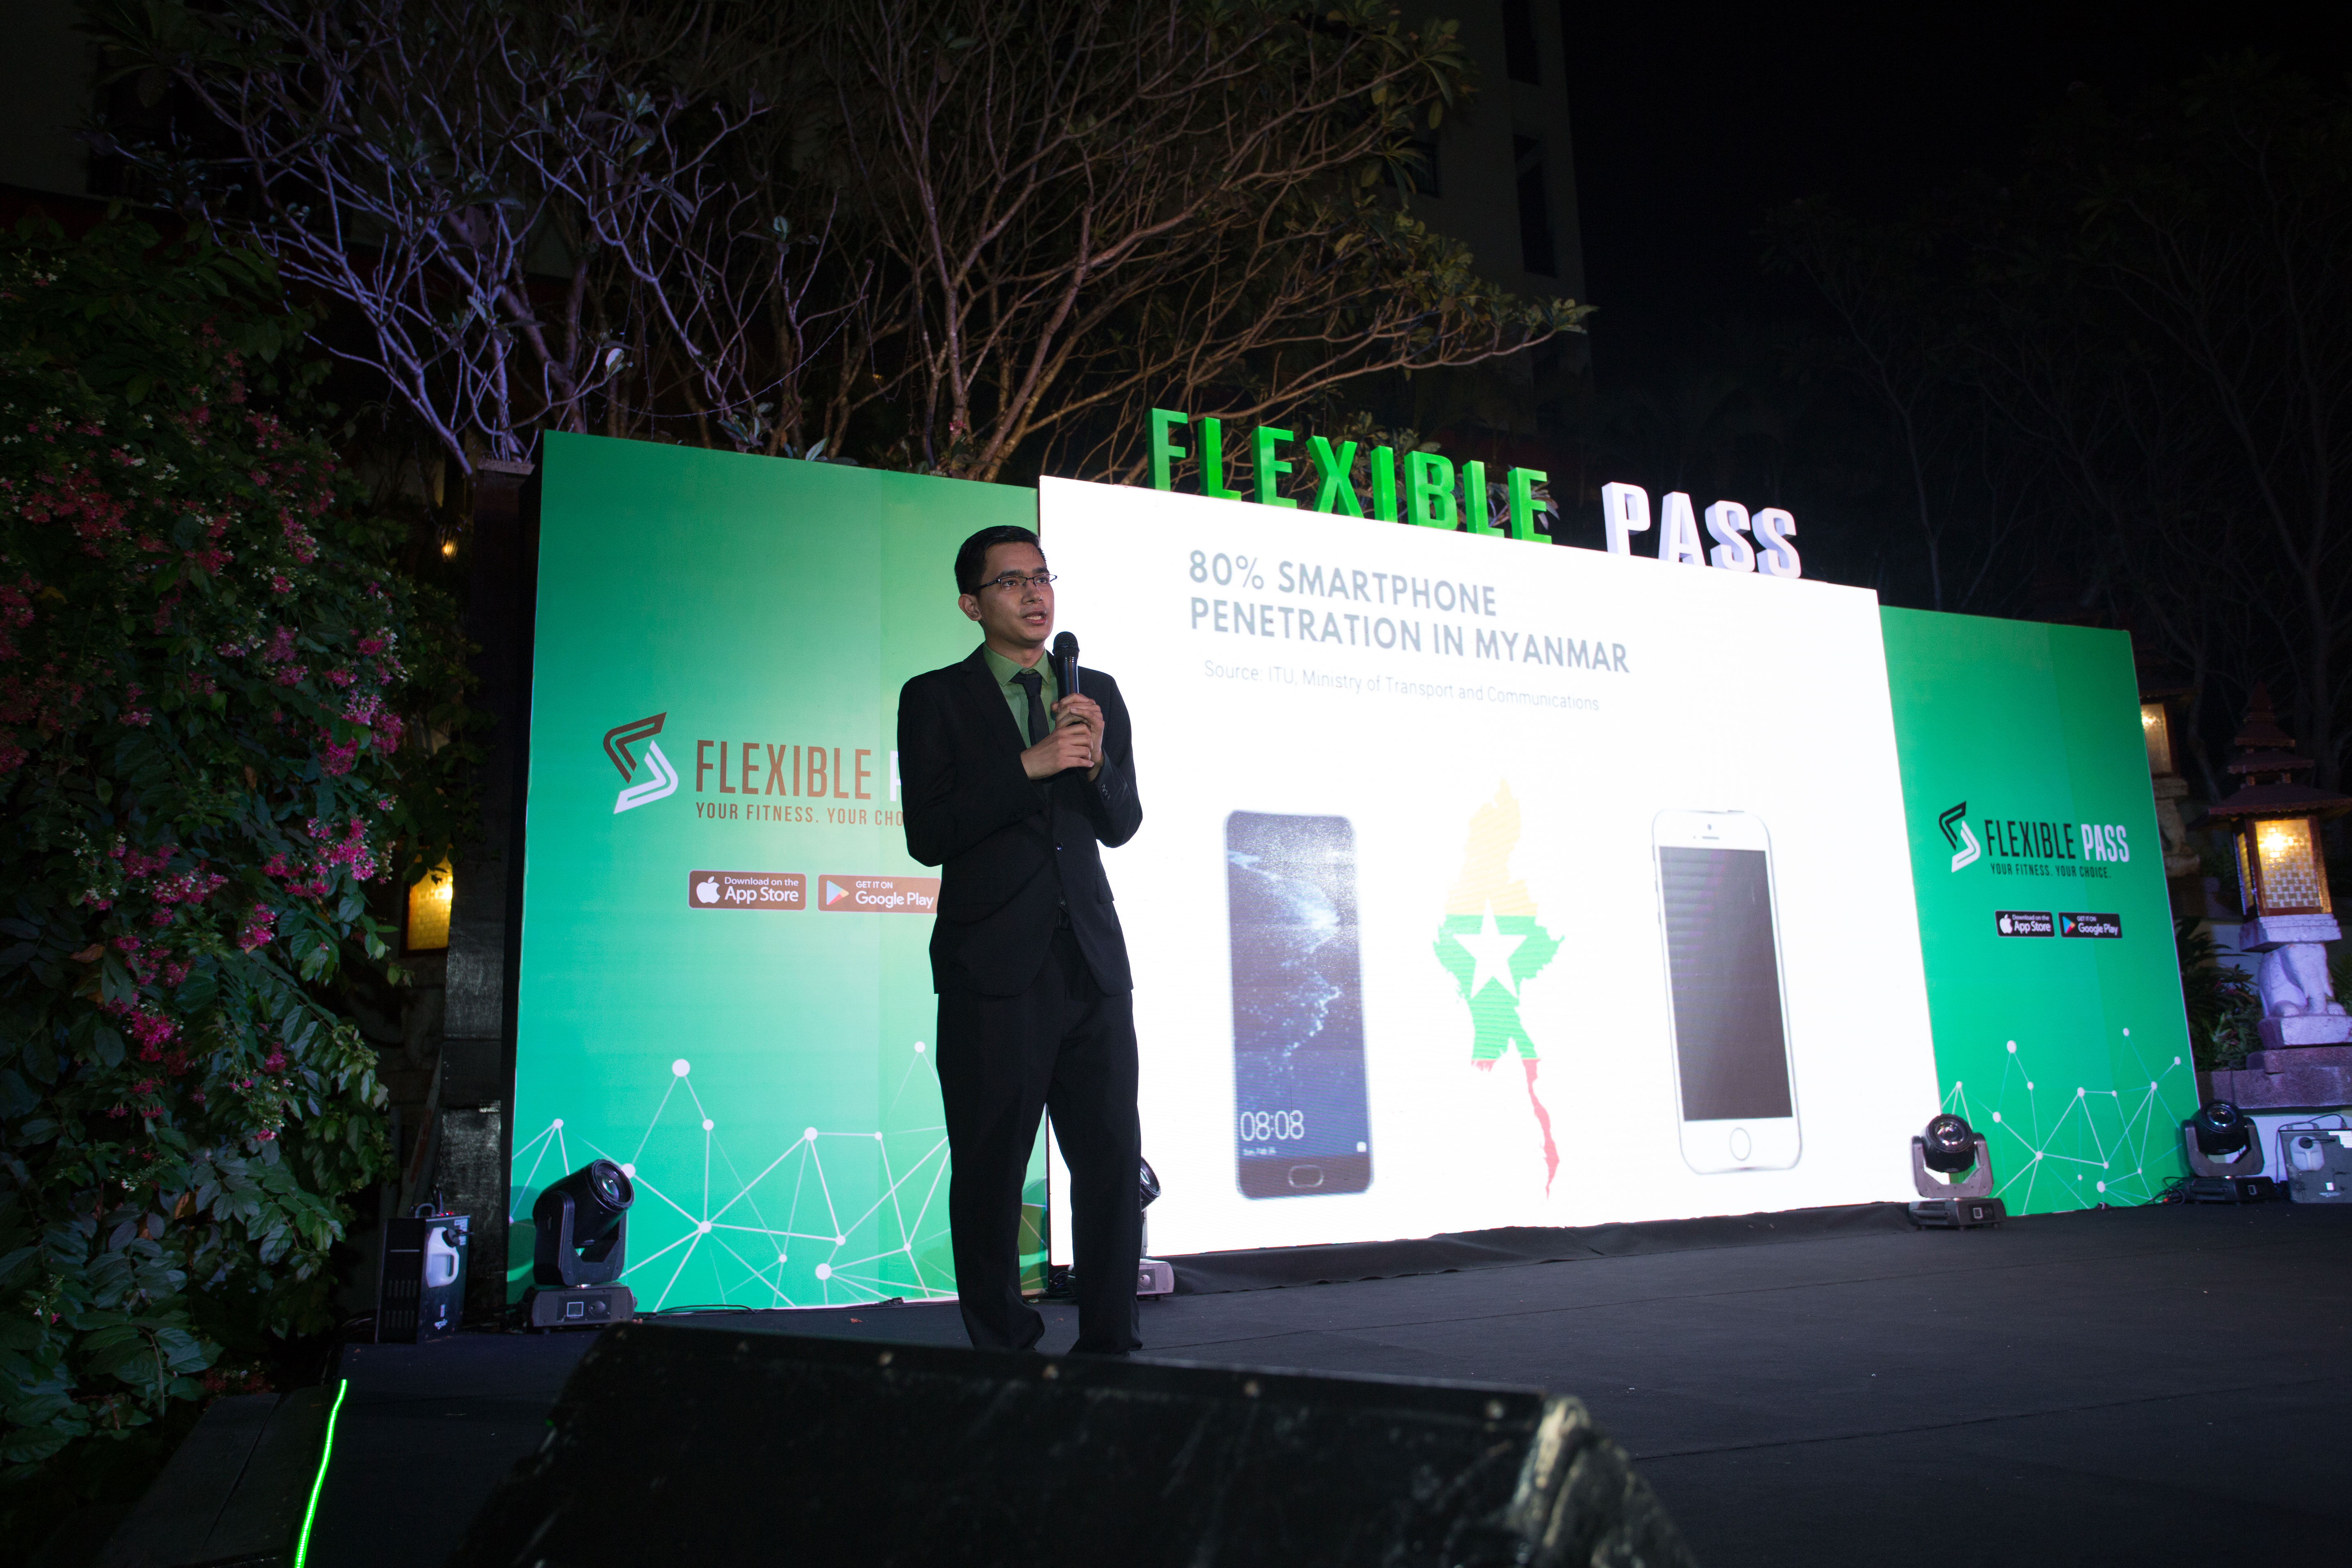 Flexible-Pass-founder-Sully-speaking-on-stage-of-Flexible-Pass's-1-year-anniversary-event.jpg